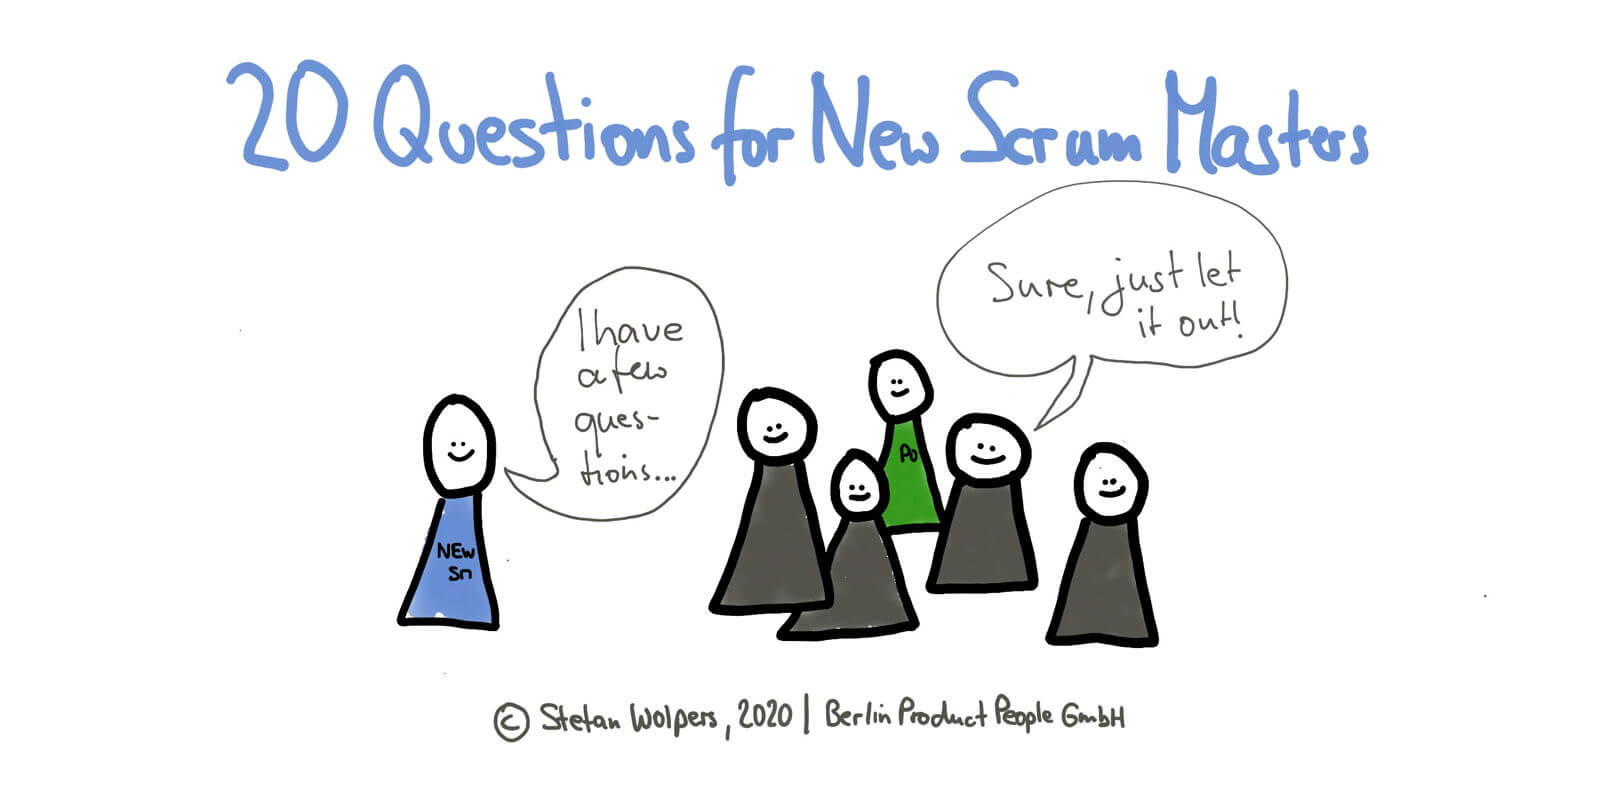 20 Questions New Scrum Masters Should Ask Their Teams to Get up to Speed